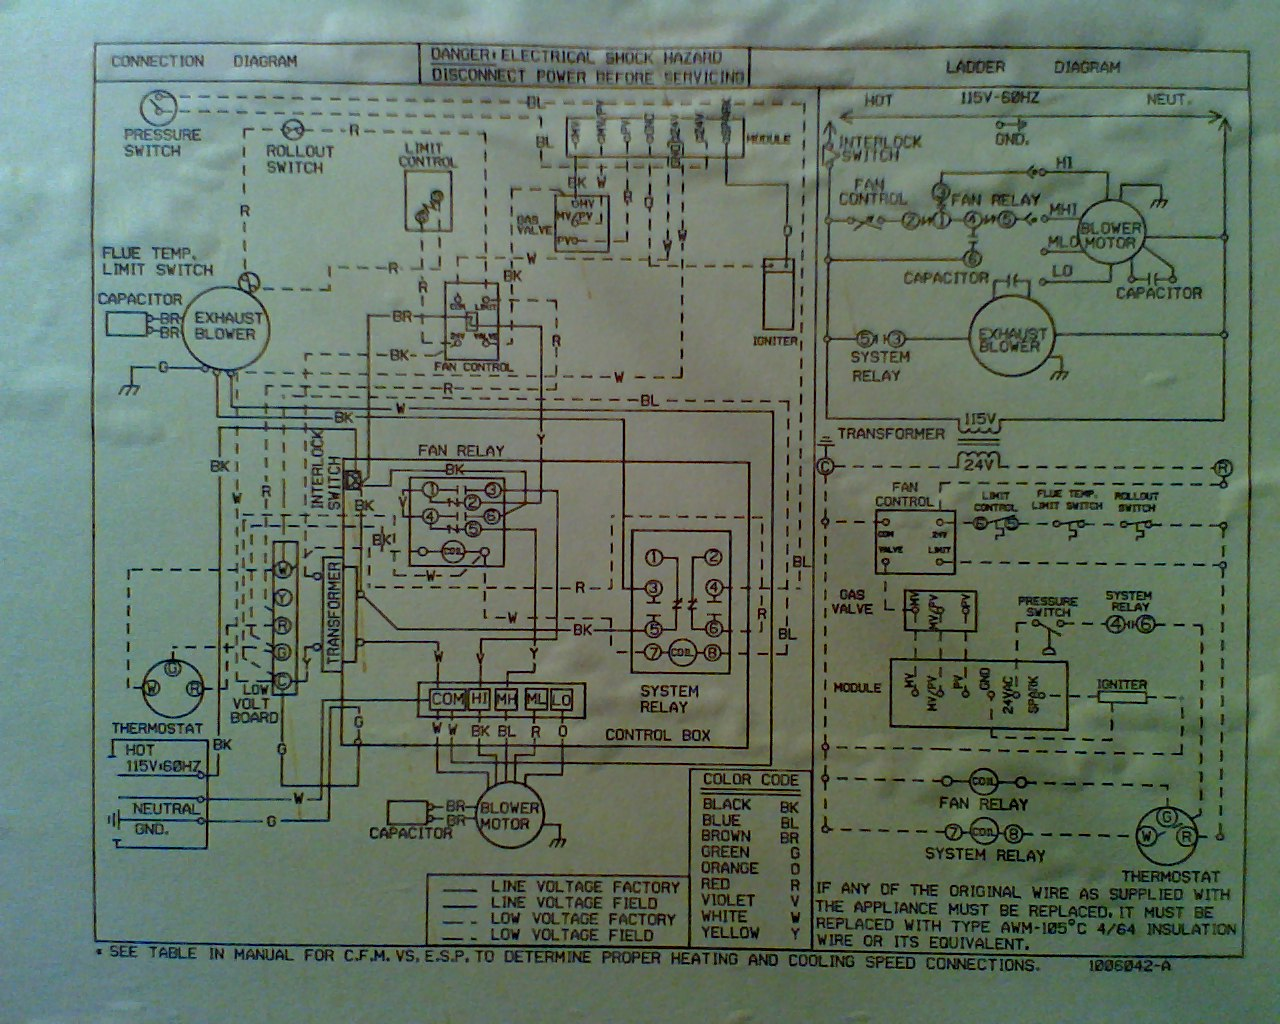 2009 11 20_231603_1120091711a air conditioner y wire grihon com ac, coolers & devices tempstar 2200 air conditioner wiring diagram at bakdesigns.co